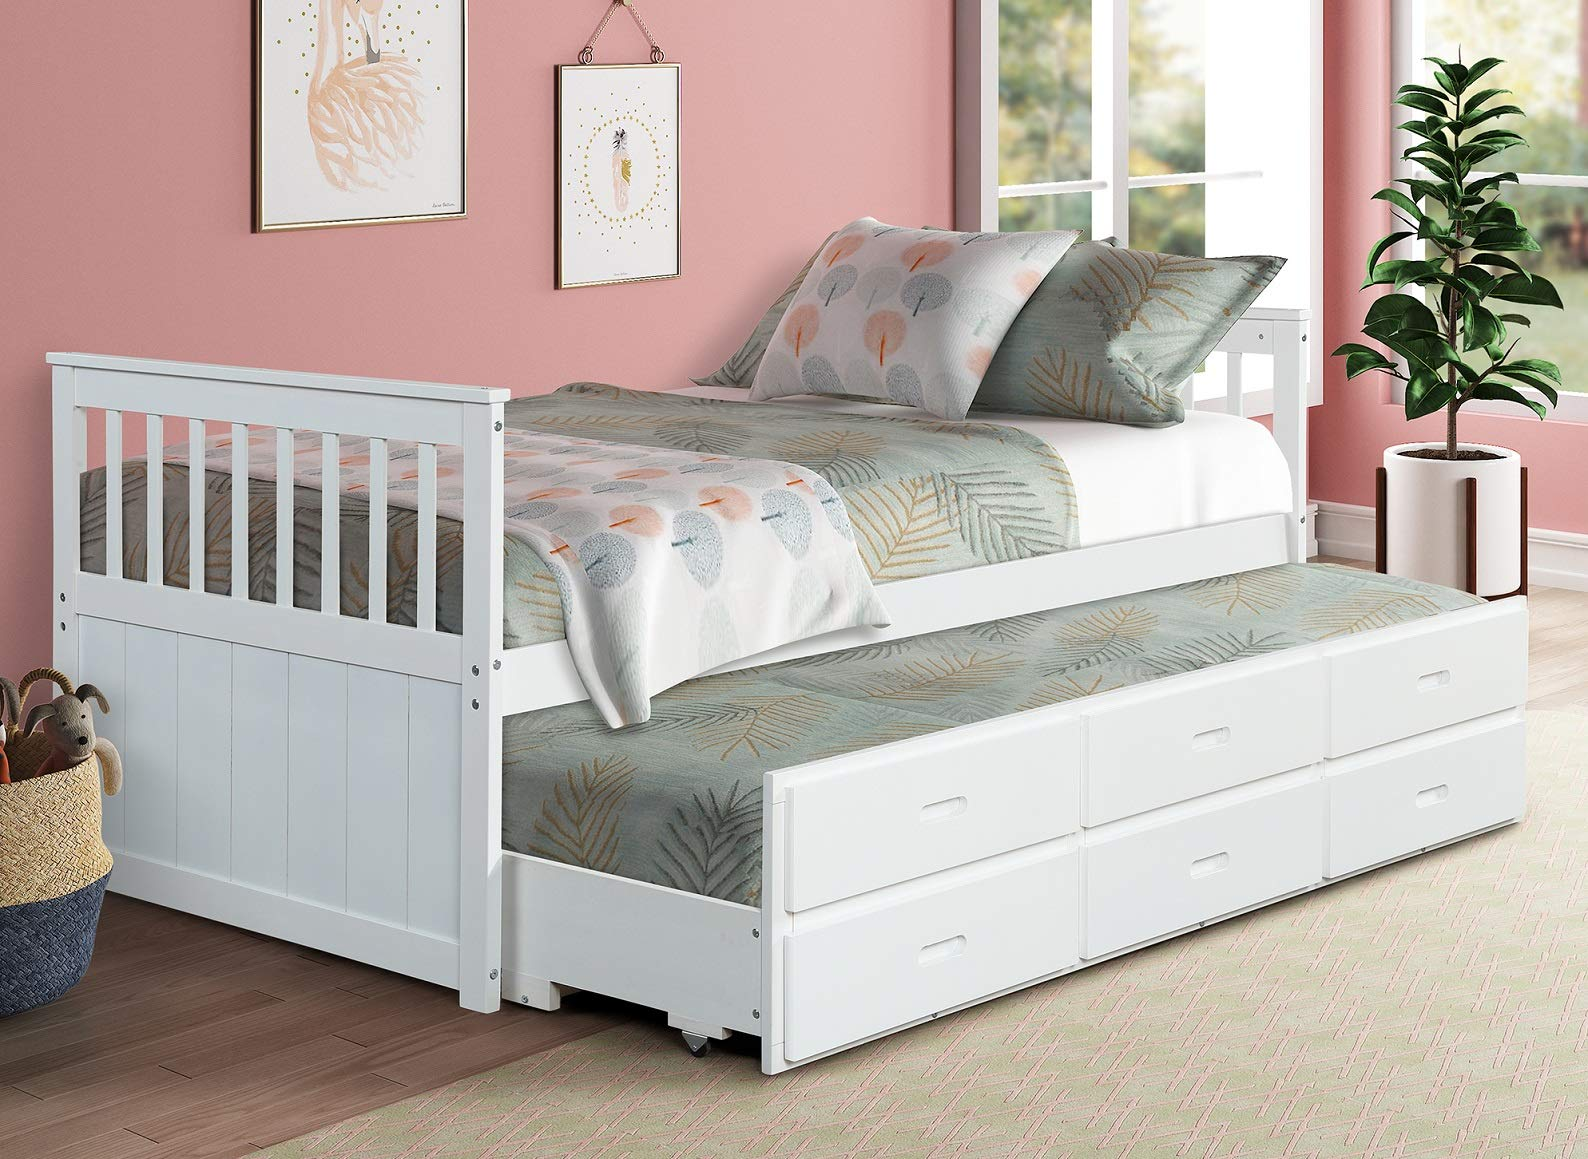 Twin Captain's Bed Storage daybed with Trundle and Drawers for Kids Guests (White) by Rhomtree